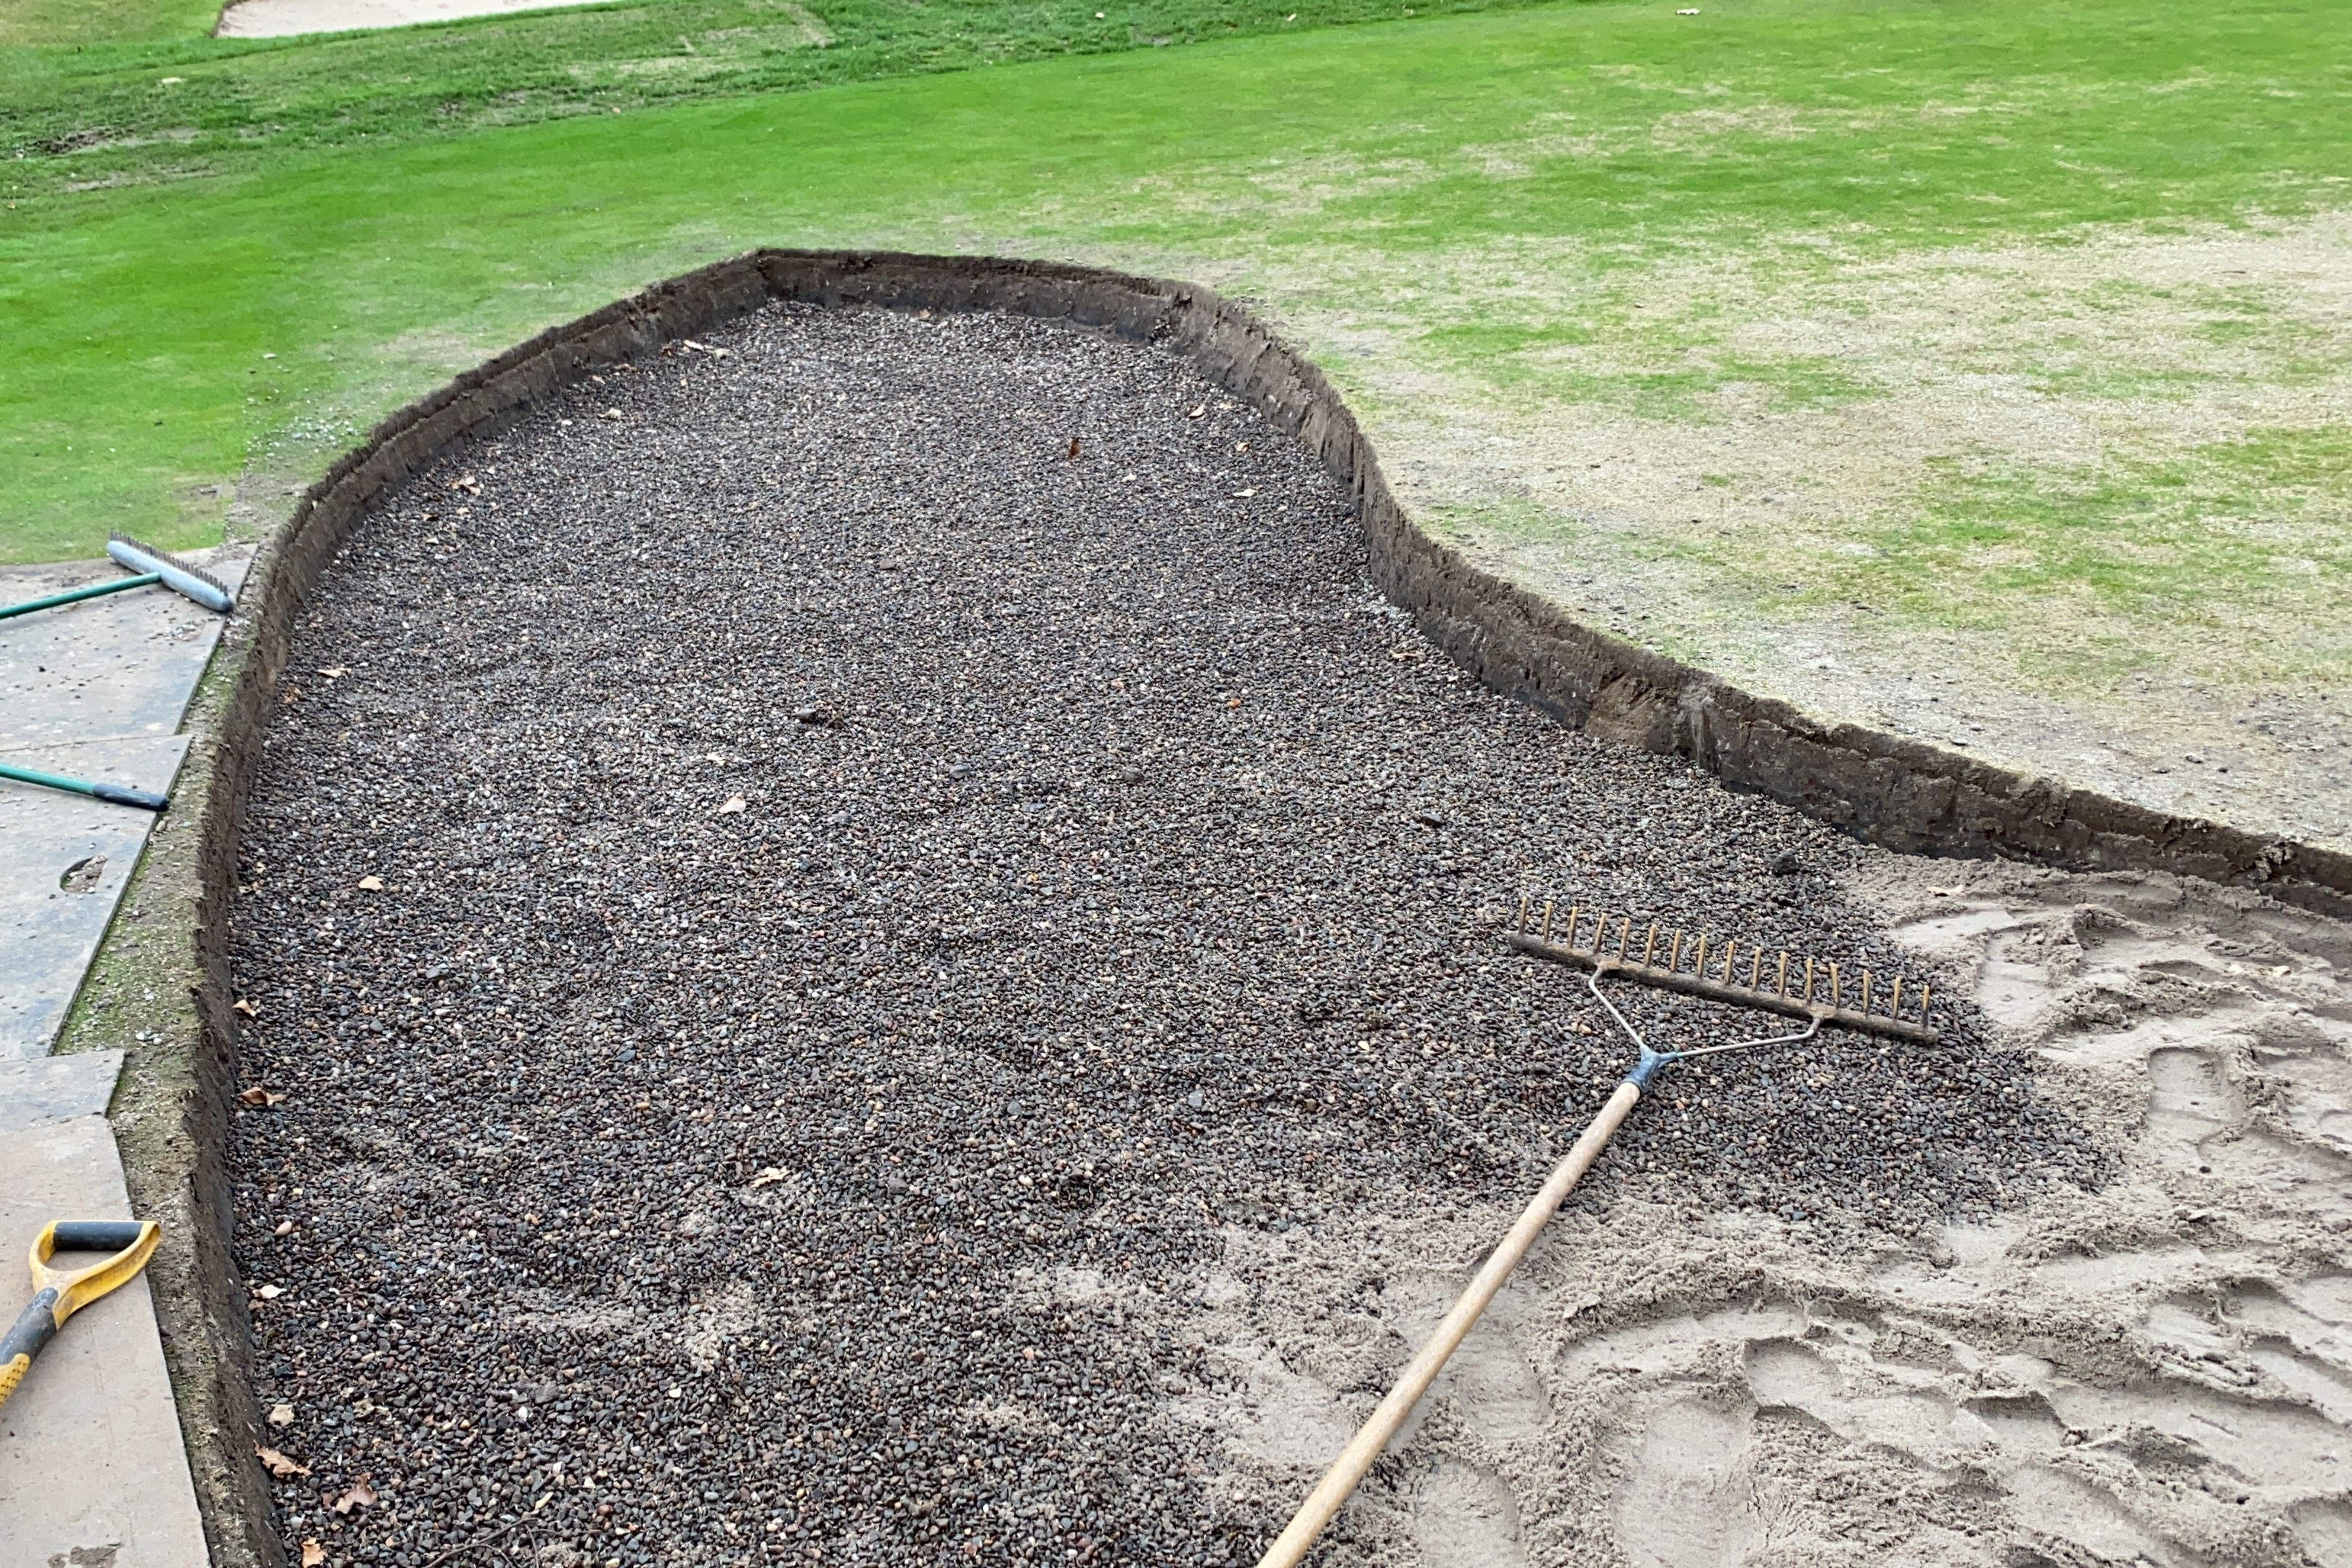 bedding in the french drain